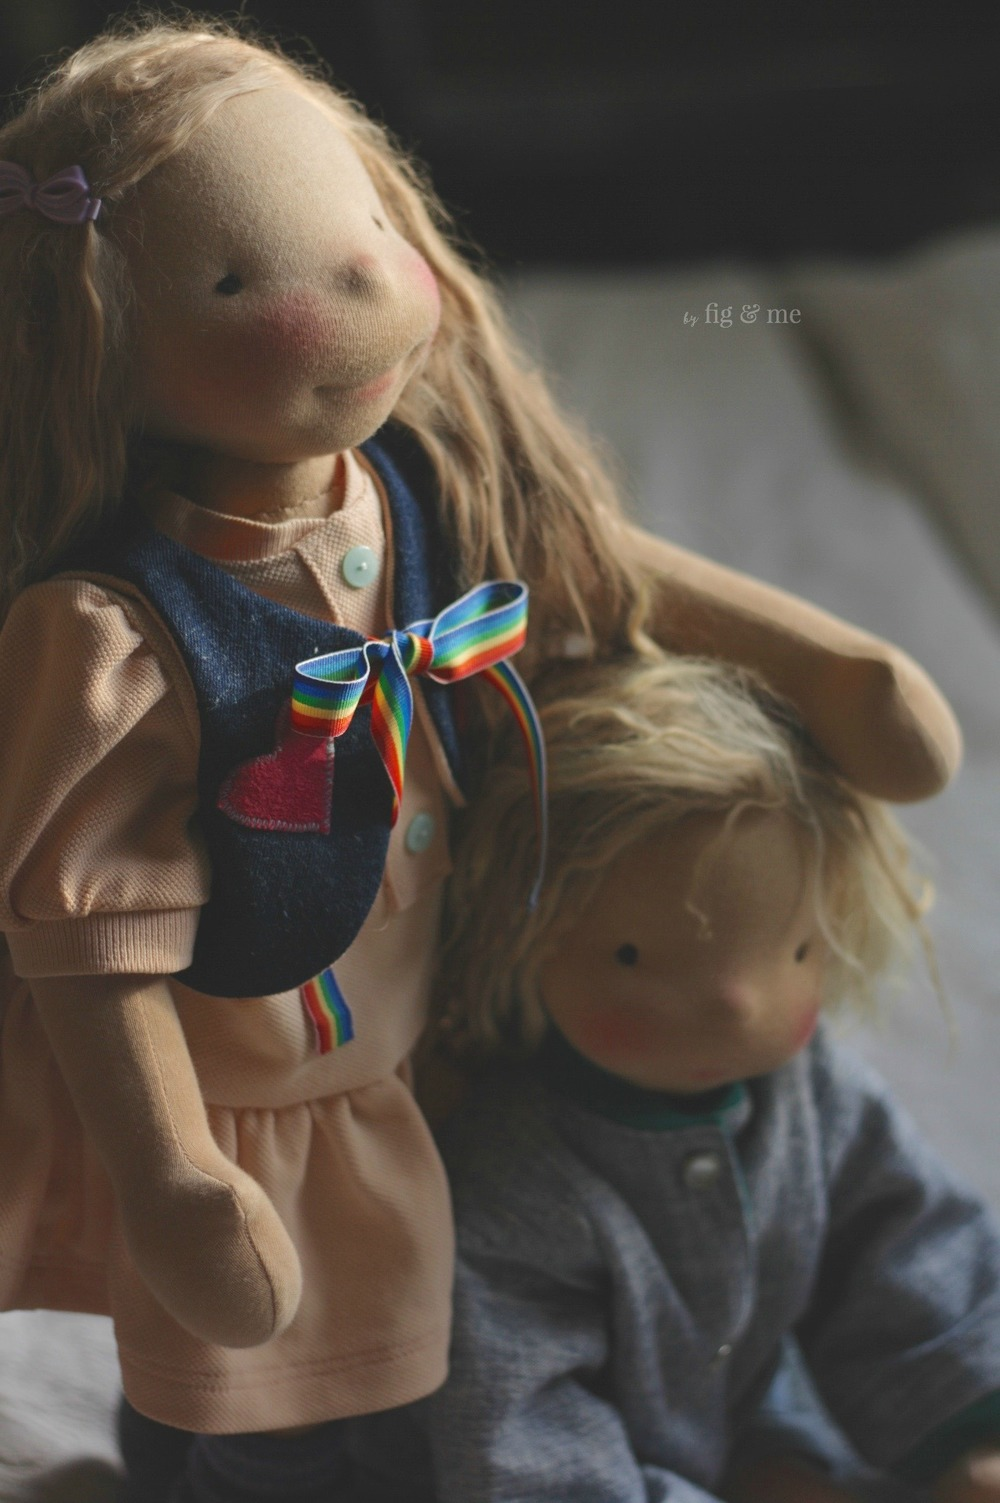 Tonja and Kelly, two natural dolls ready to fly home. They are wearing their second outfits, 80s style. By Fig and Me.